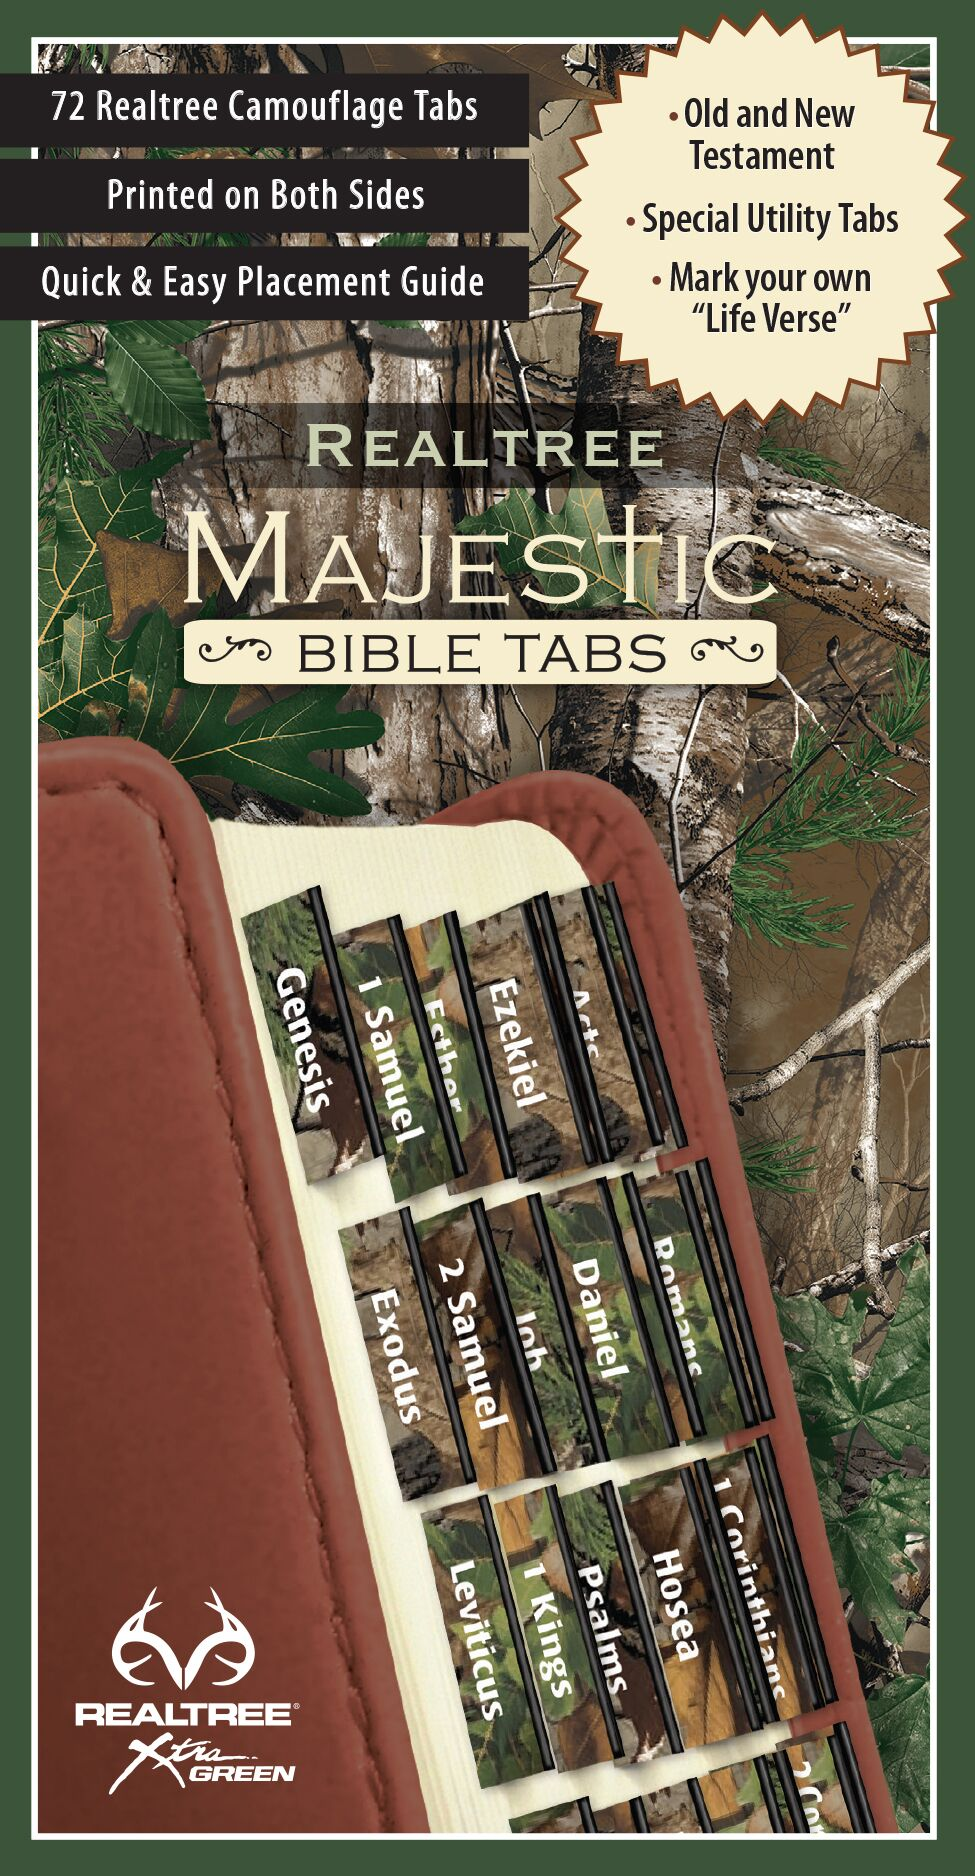 Green Camo Majestic Bible Tabs